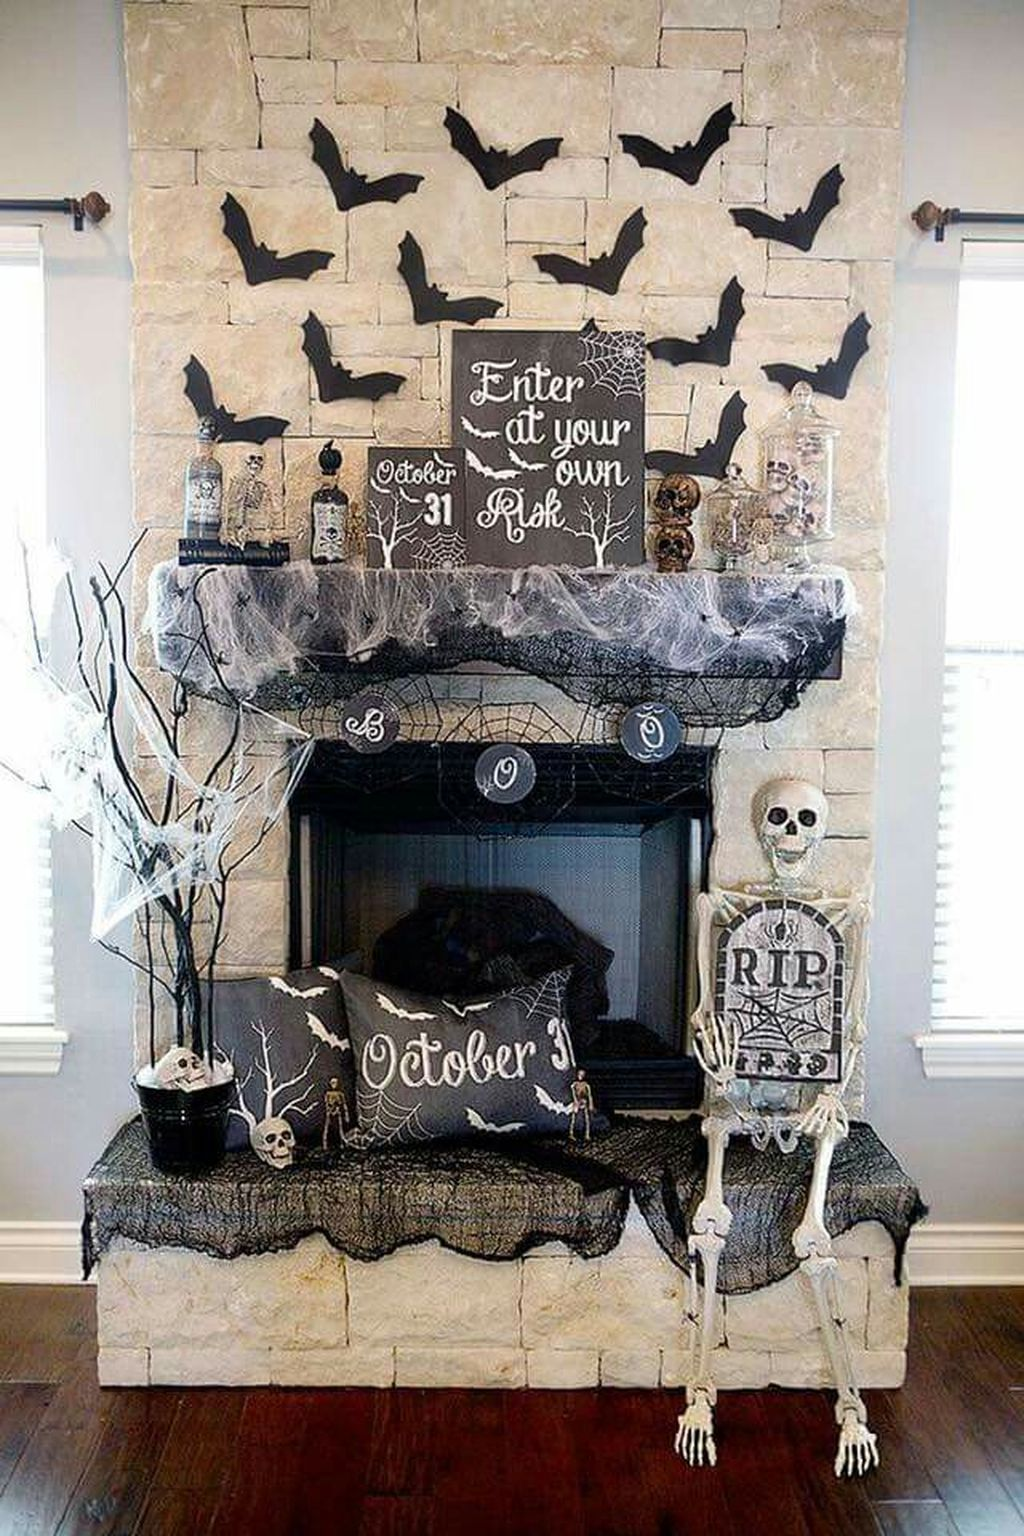 Scary But Classy Halloween Fireplace Decoration Ideas 04